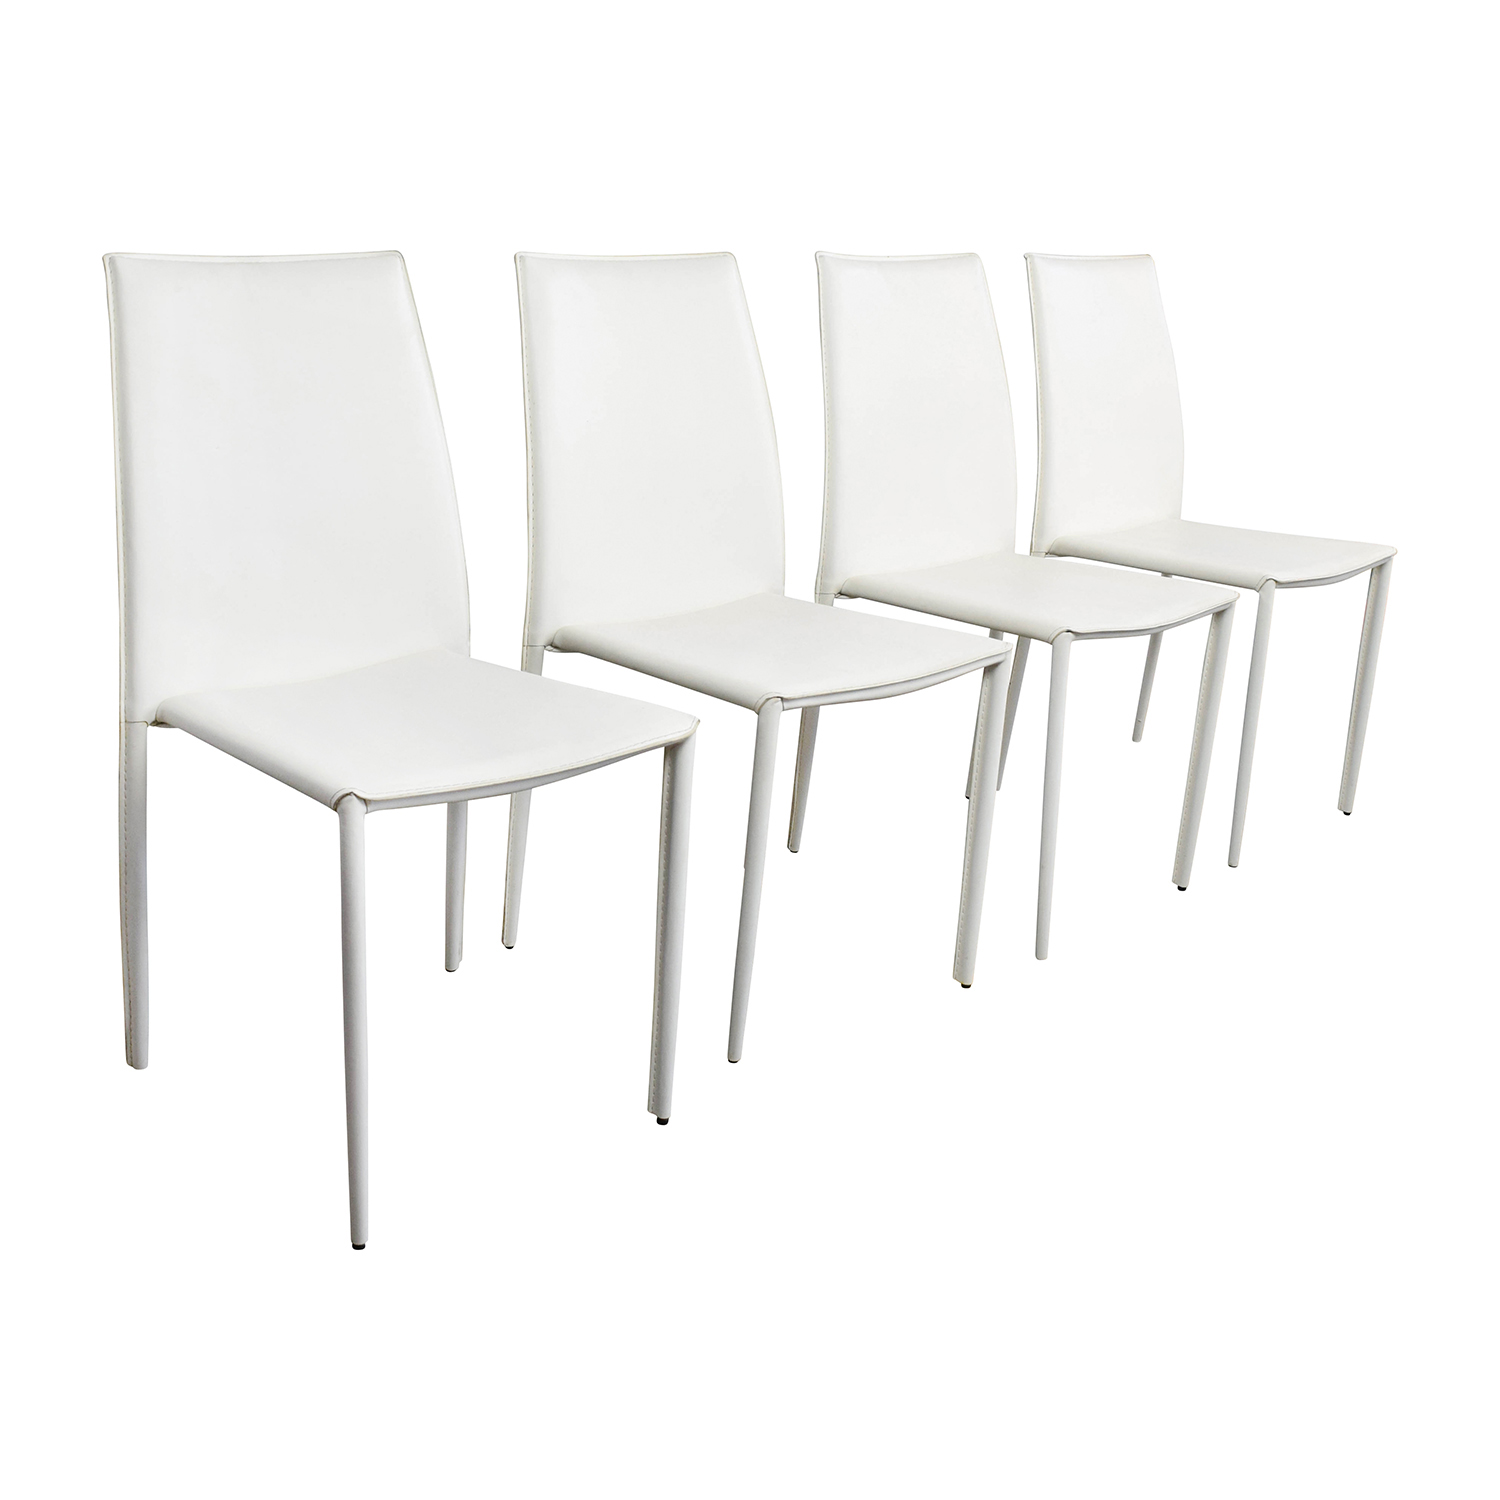 Popular 225 List Modern White Dining Chairs